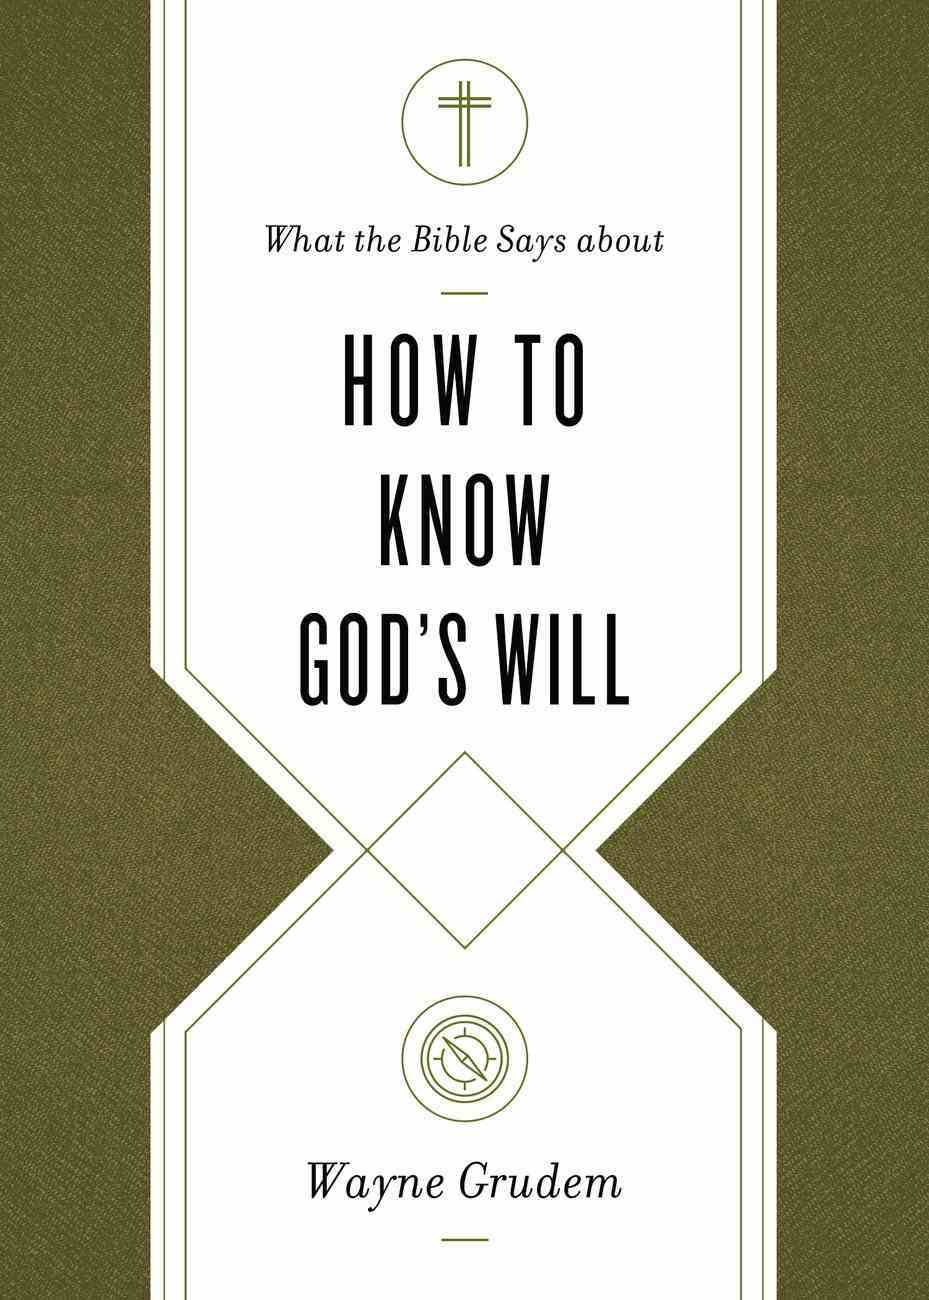 What the Bible Says About How to Know God's Will: Factors to Consider in Making Ethical Decisions Paperback